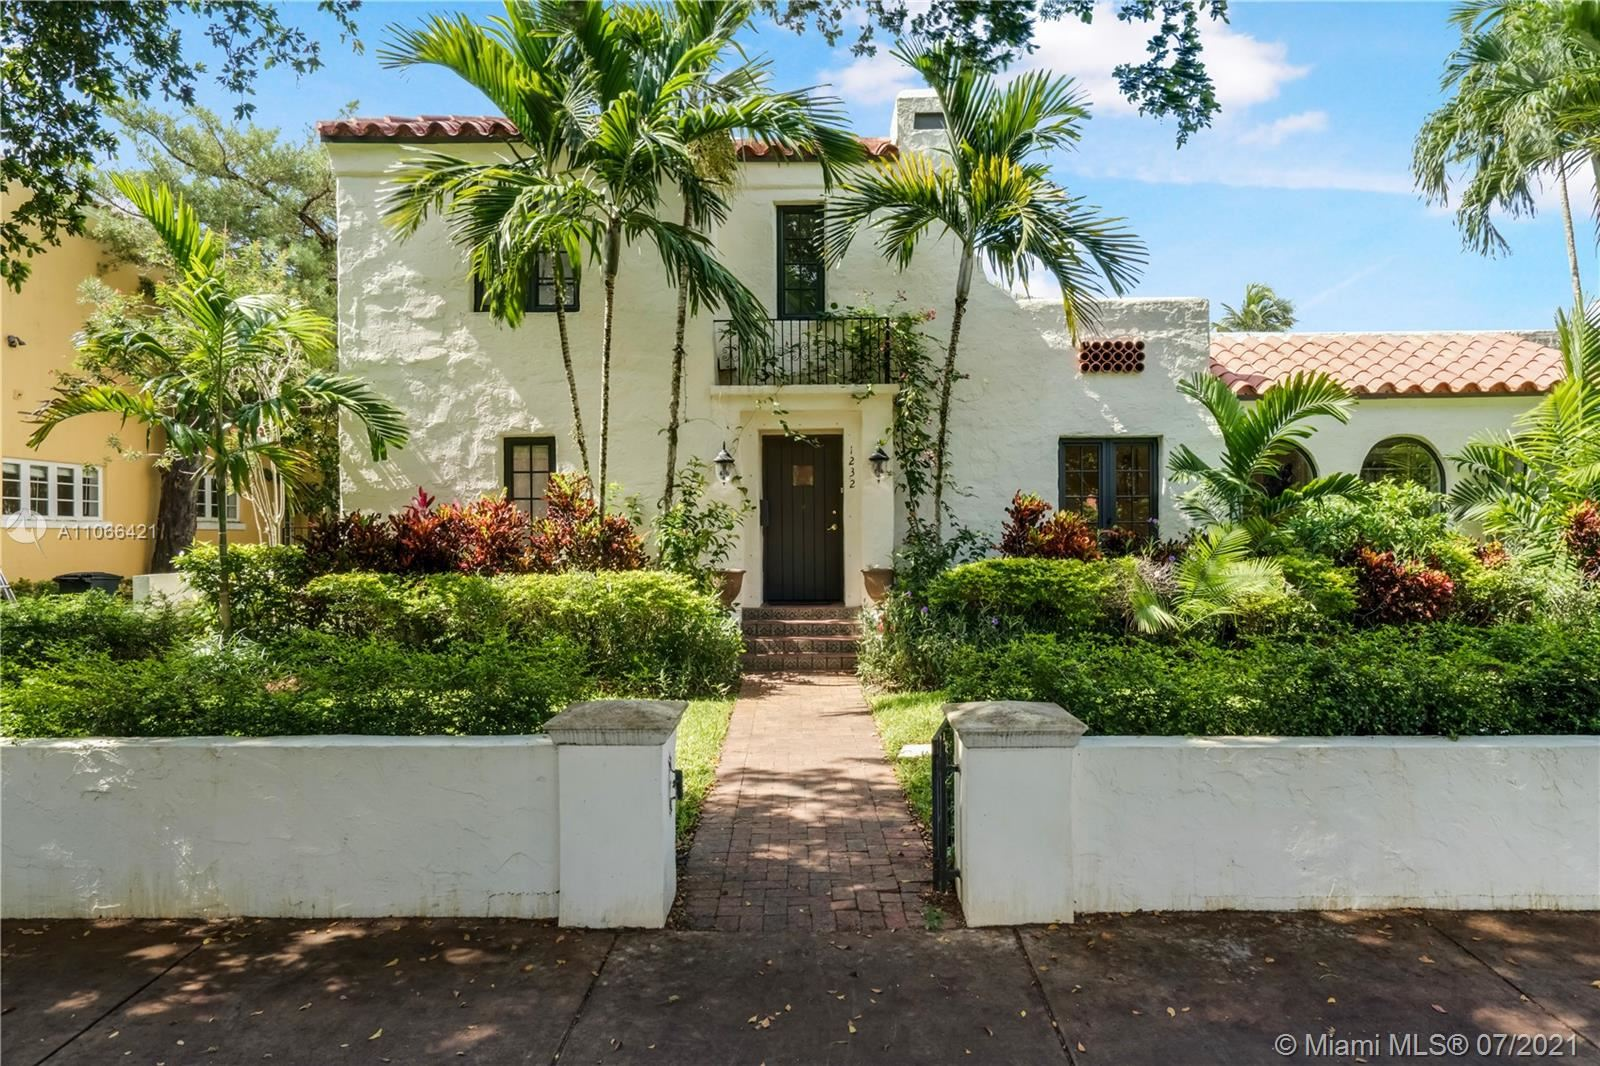 Photo of 1232 Palermo Ave, Coral Gables, FL 33134 (MLS # A11066421)